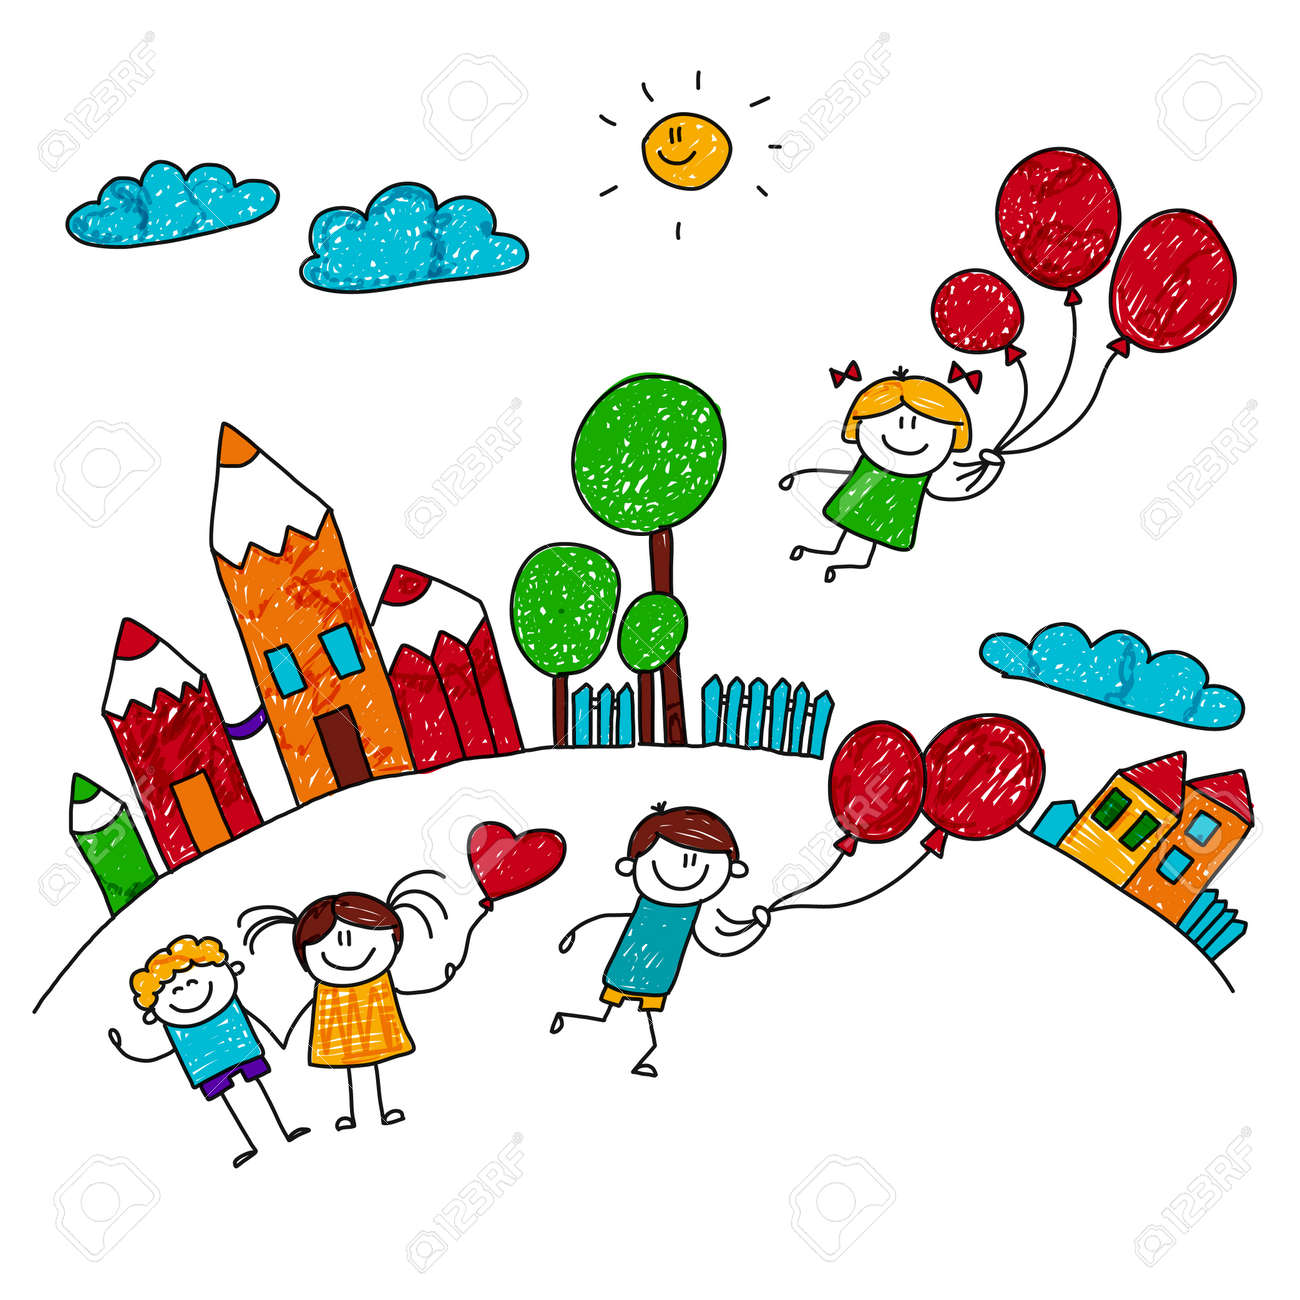 illustration of happy children playing with balloons at school yard kids drawing style stock vector - Images Of Children Playing At School